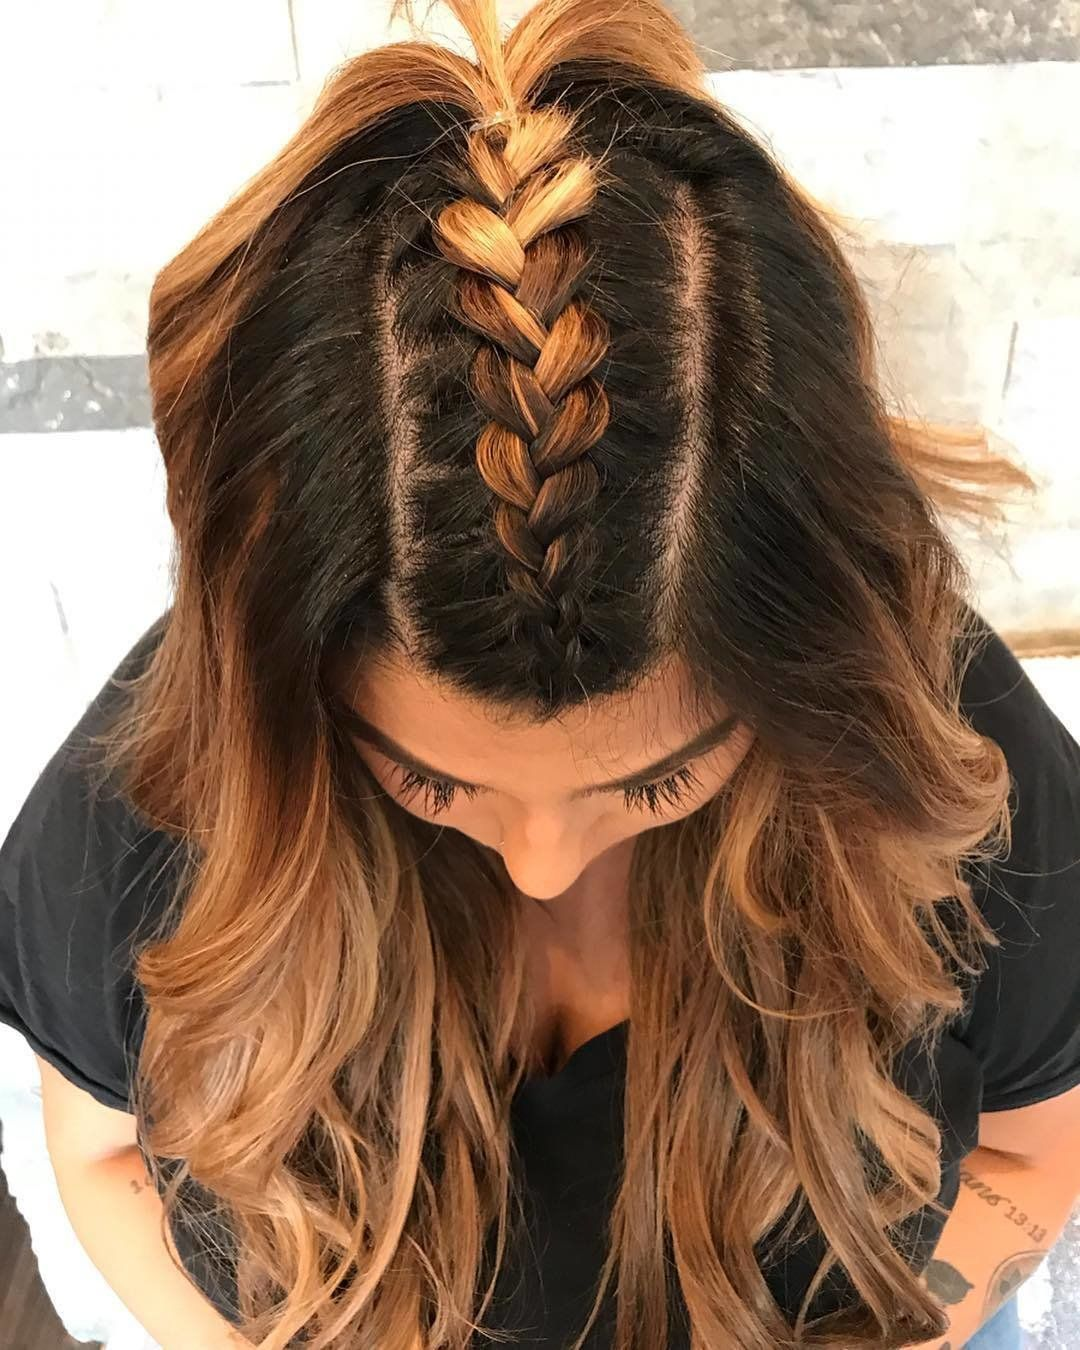 35 Gorgeous Braid Styles That Are Easy to Master